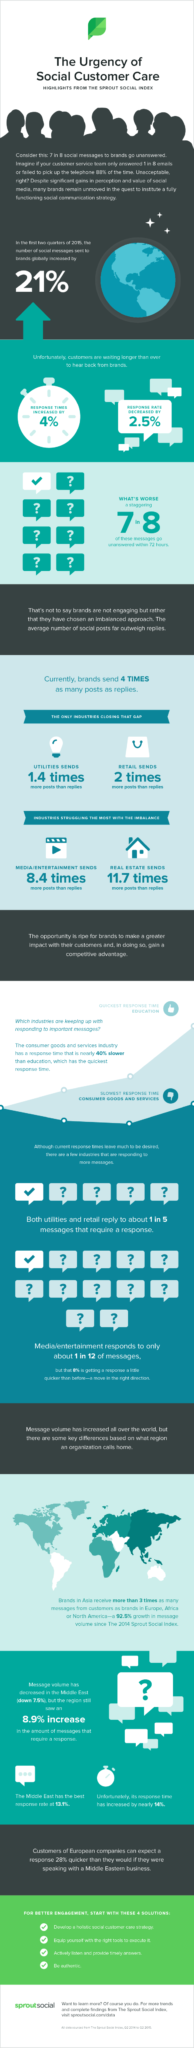 Sprout-Index-2015-Infographic1